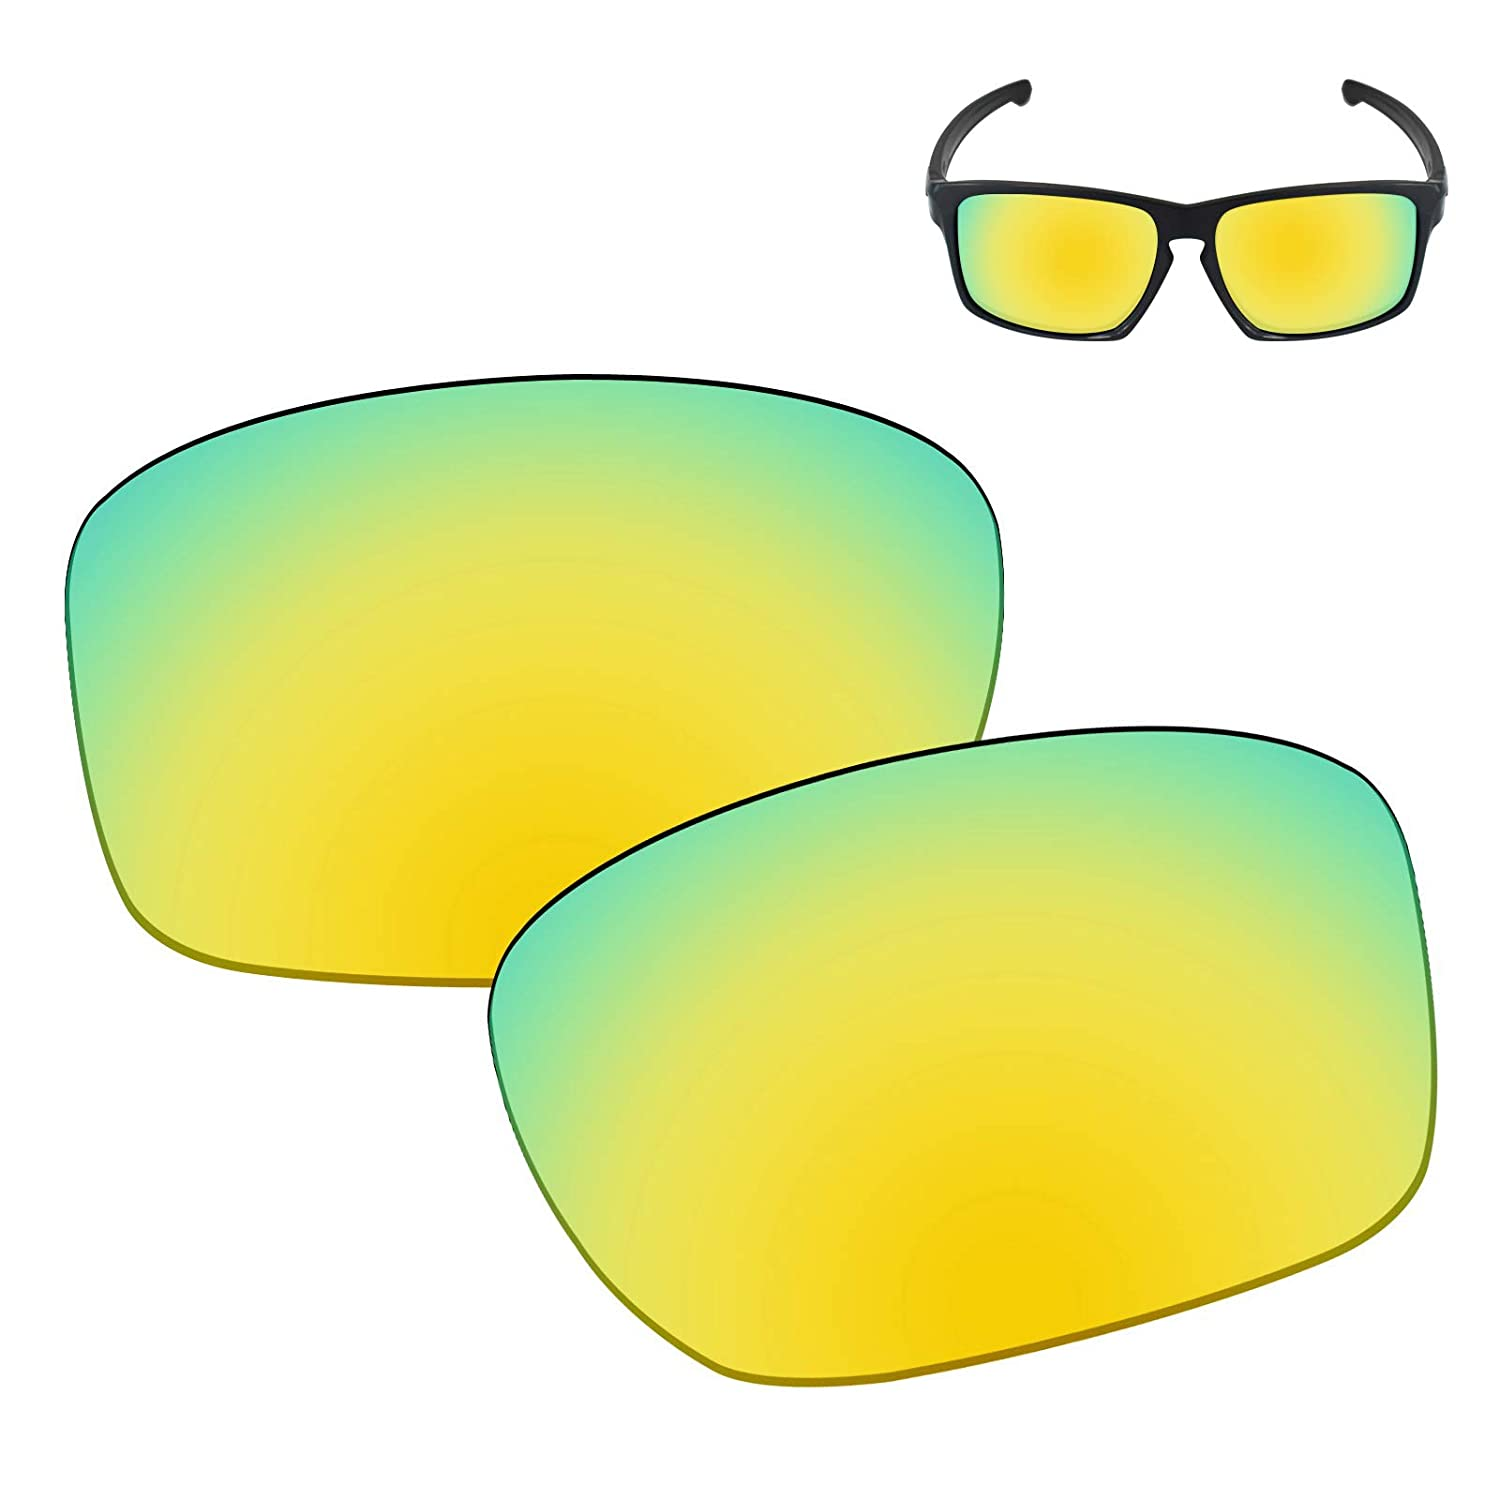 2ac7ad8423 Amazon.com  Galvanic Replacement Lenses for Oakley Sliver Sunglasses - 24k  Polarized  Clothing